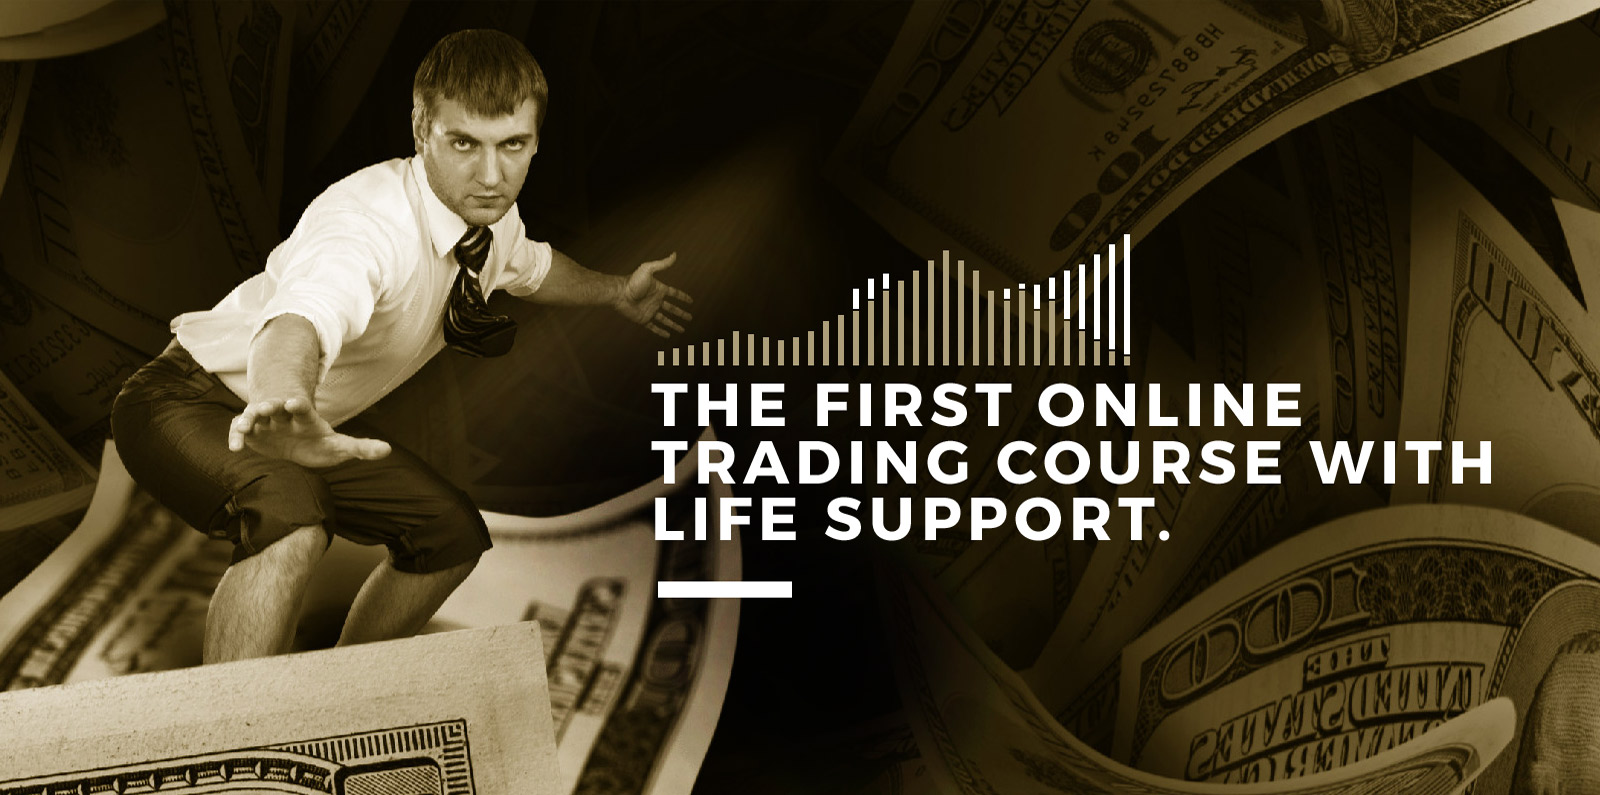 The first online trading course with life supprot.